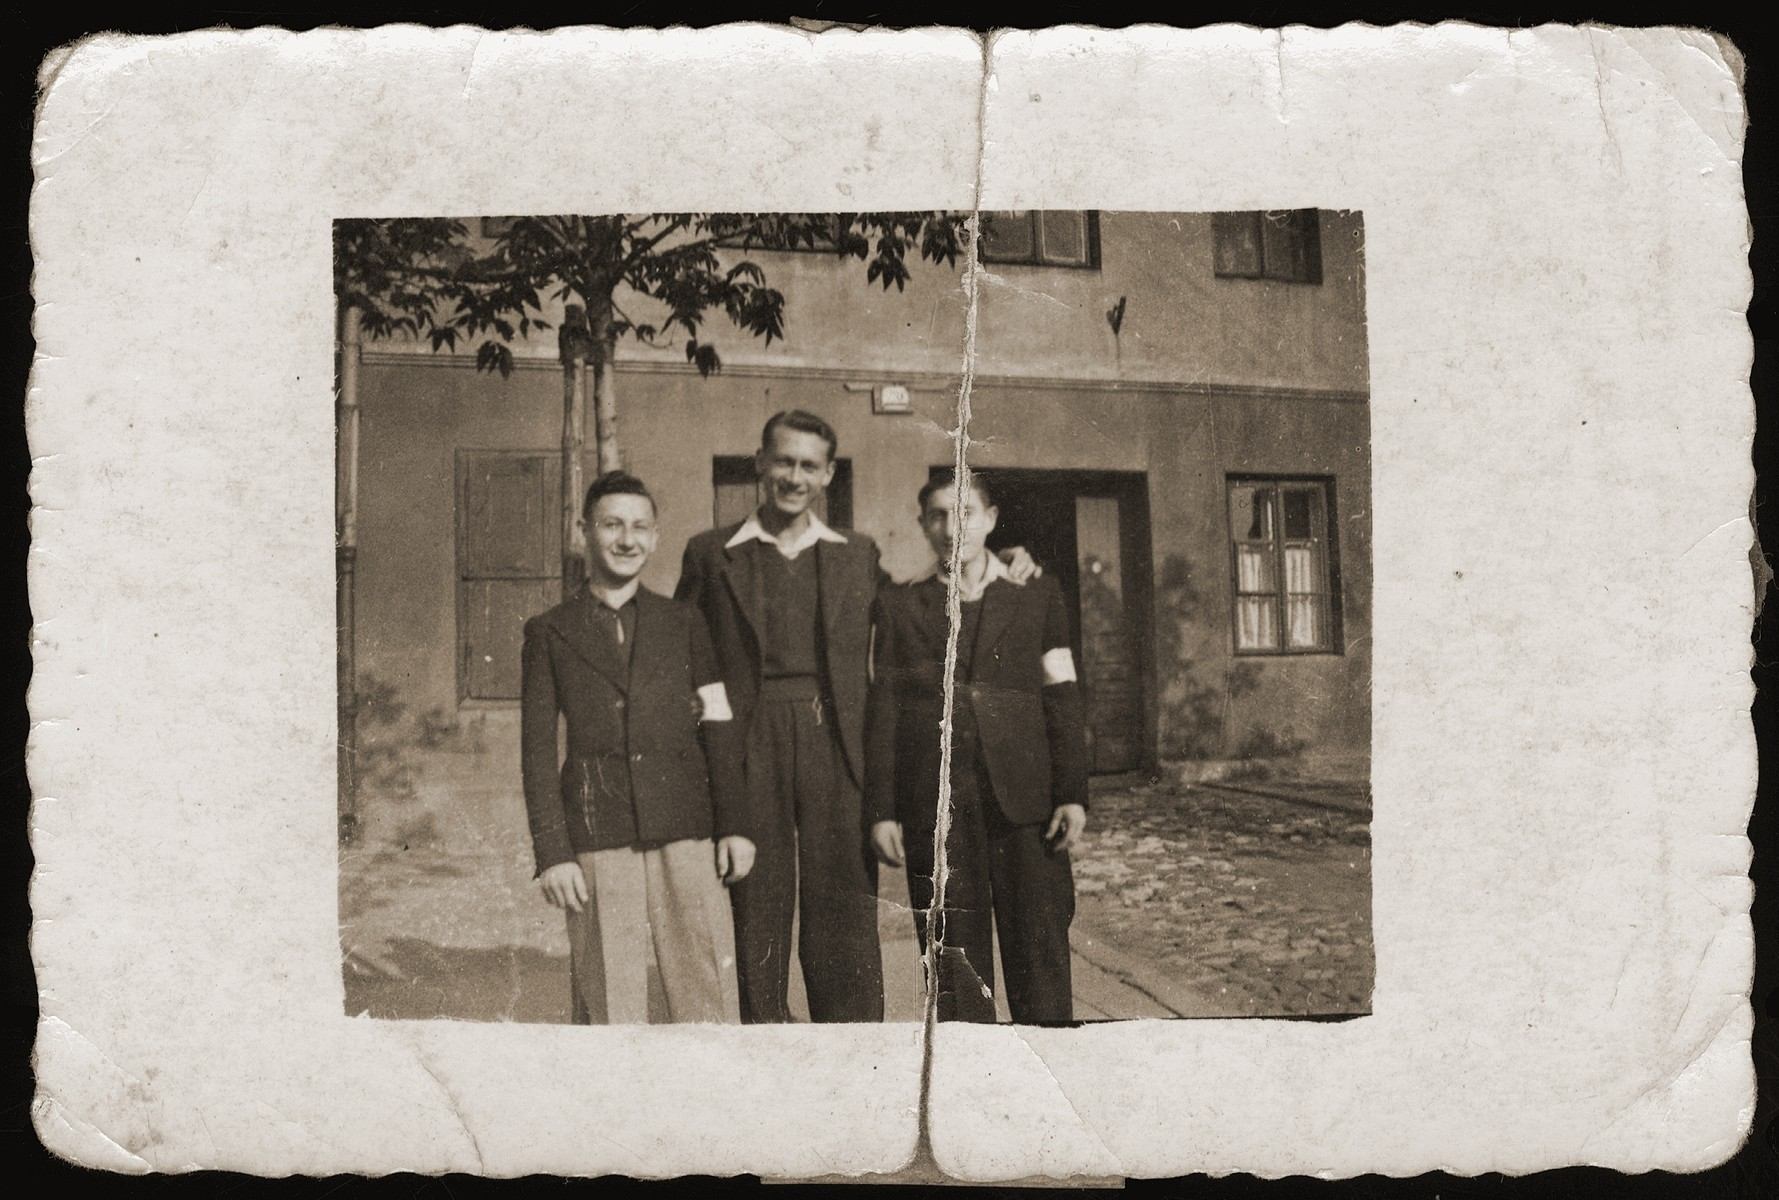 Three Jewish youth pose outside in the Dabrowa Gornicza ghetto.    Pictured from right to left are: Moniek Rozen, Moniek Najfeld and Moniek Szeps.